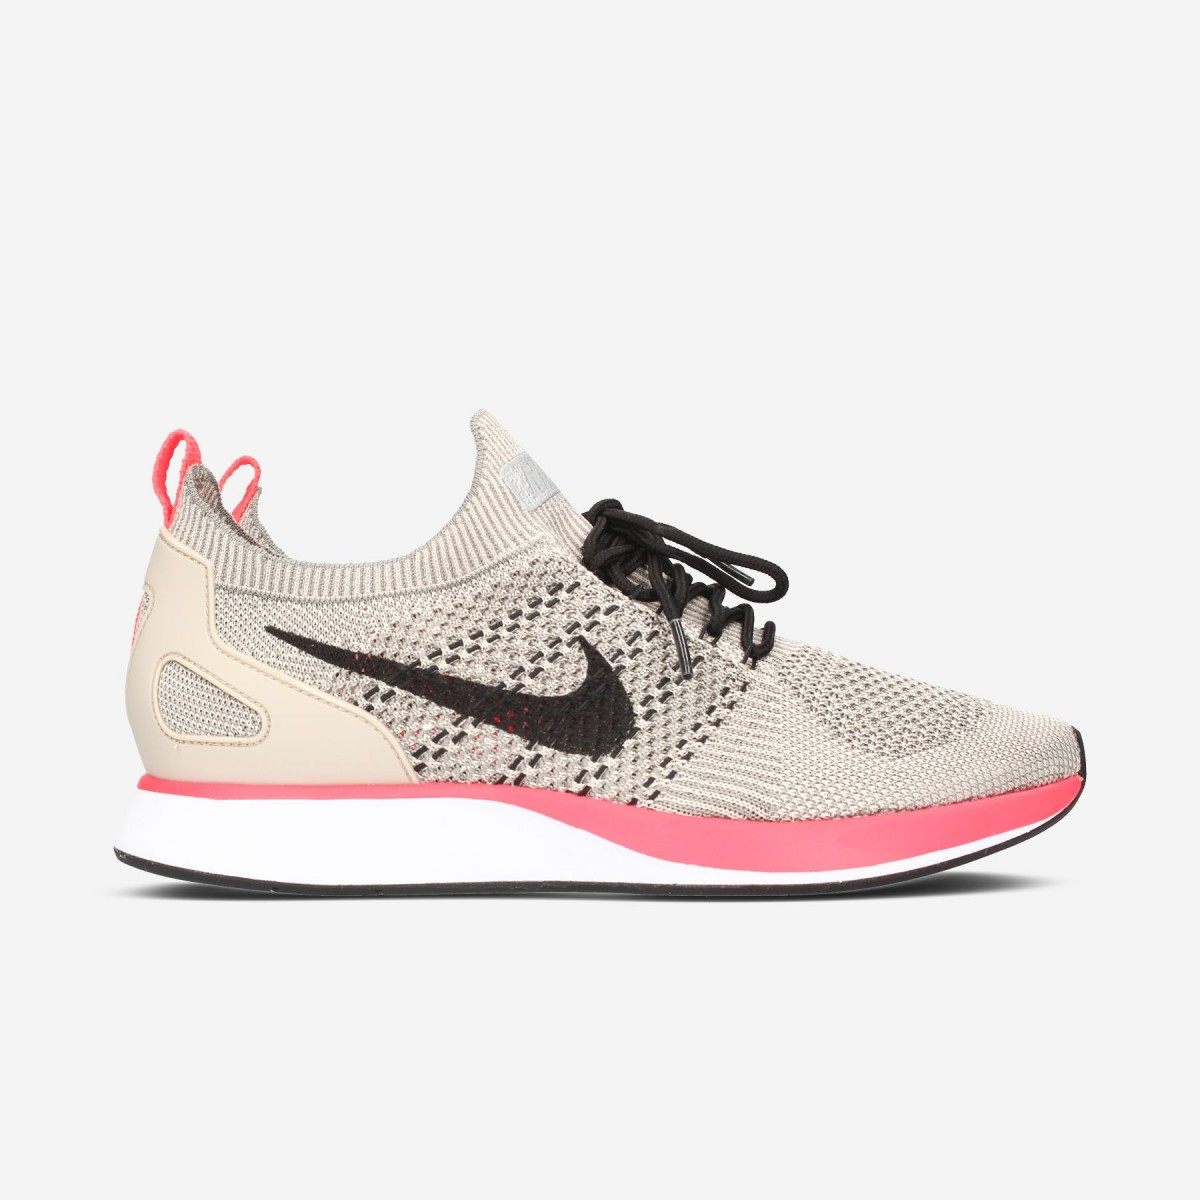 Découvrez Populaire Nike Air Zoom Mariah Flyknit Femme Chaussure Pas Cher Royer3601920